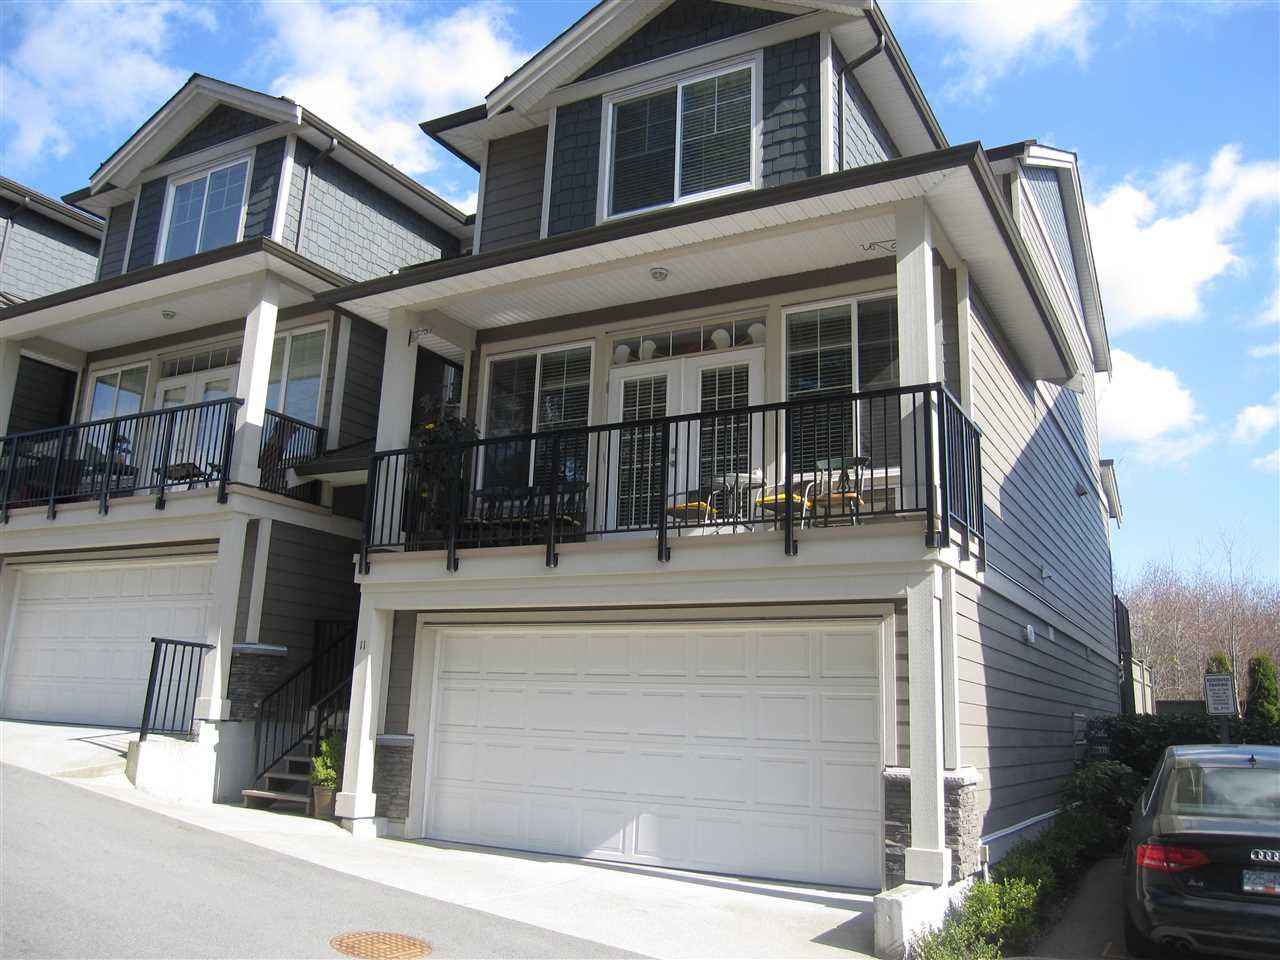 "Main Photo: 11 11384 BURNETT Street in Maple Ridge: East Central Townhouse for sale in ""MAPLE CREEK ESTATES"" : MLS®# R2256062"